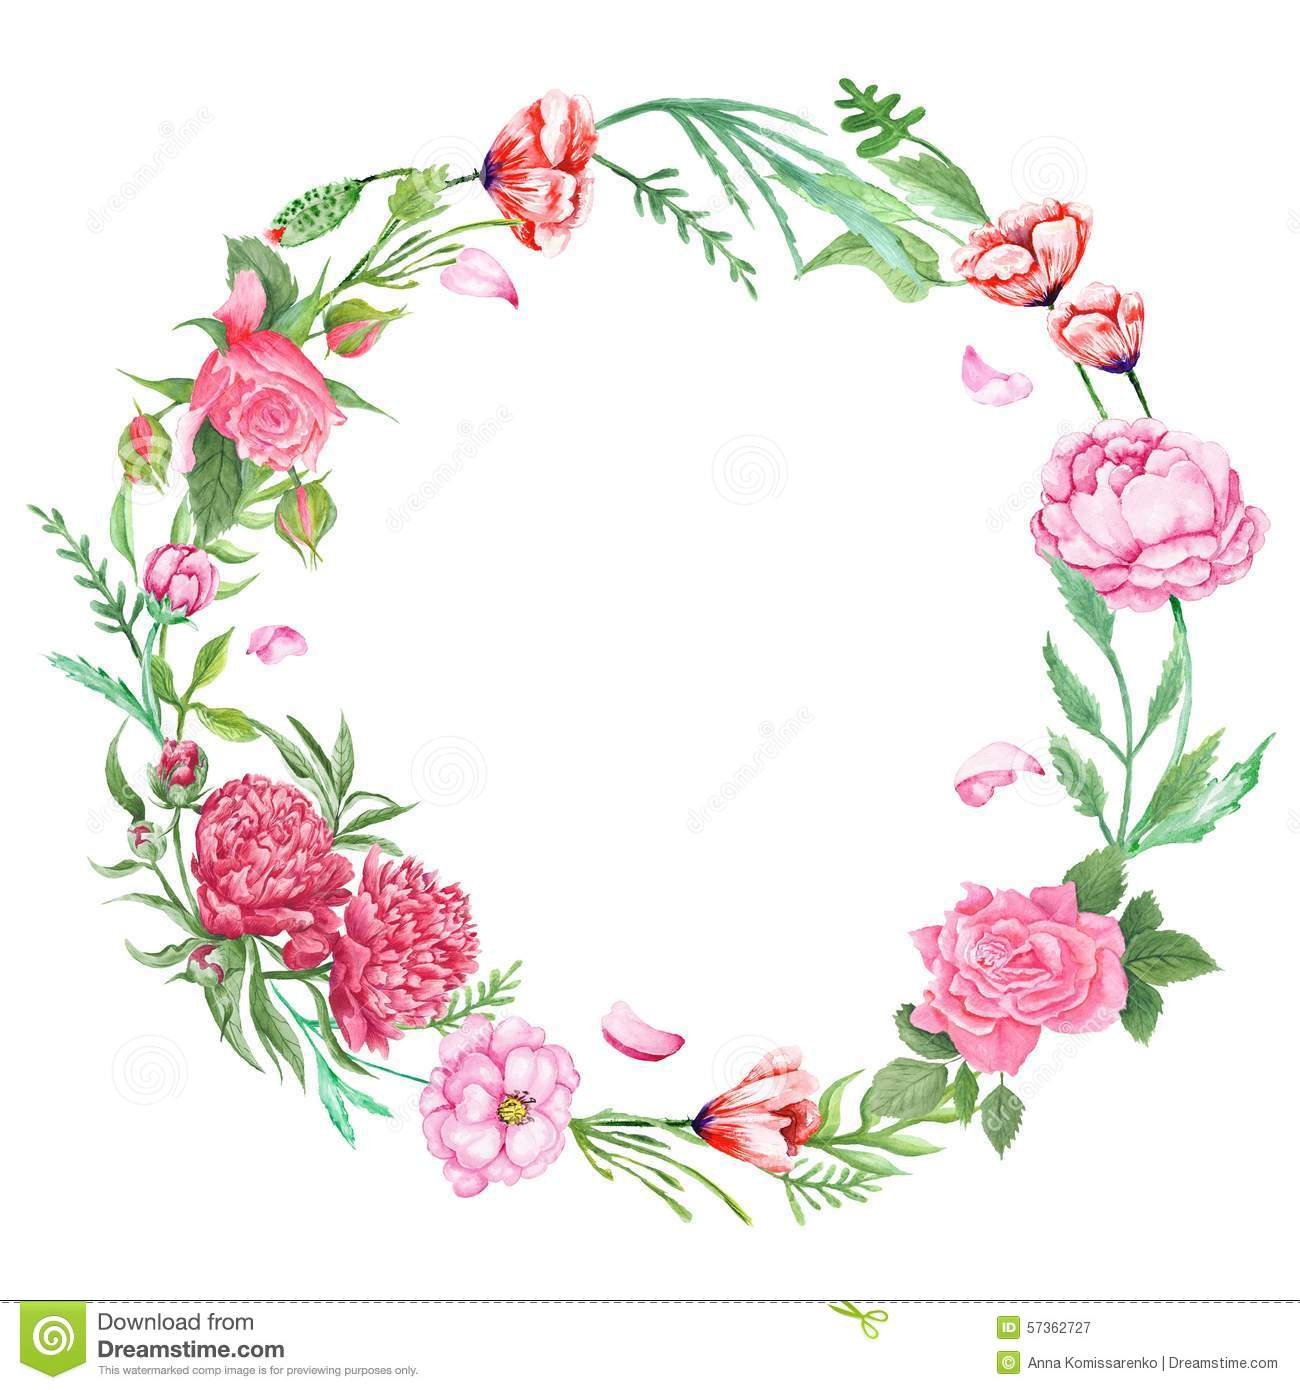 Shabby Chic Floral Wreath Illustration 57362727 - Megapixl